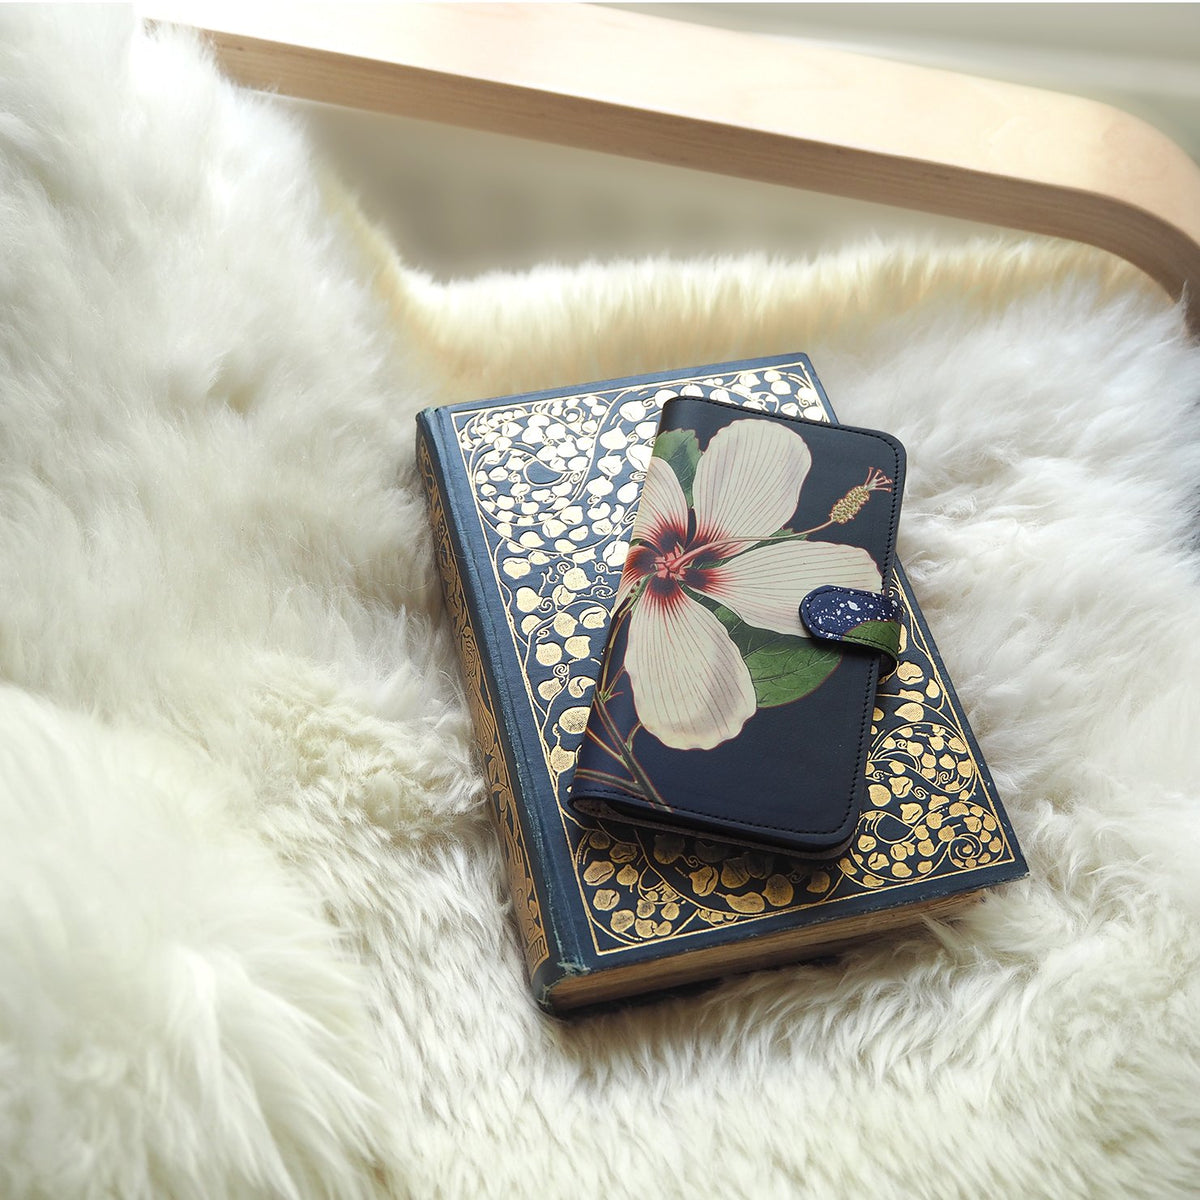 Leather Folio Phone Case - iphone 8 plus leather case - bifold phone case – Flower phone cover